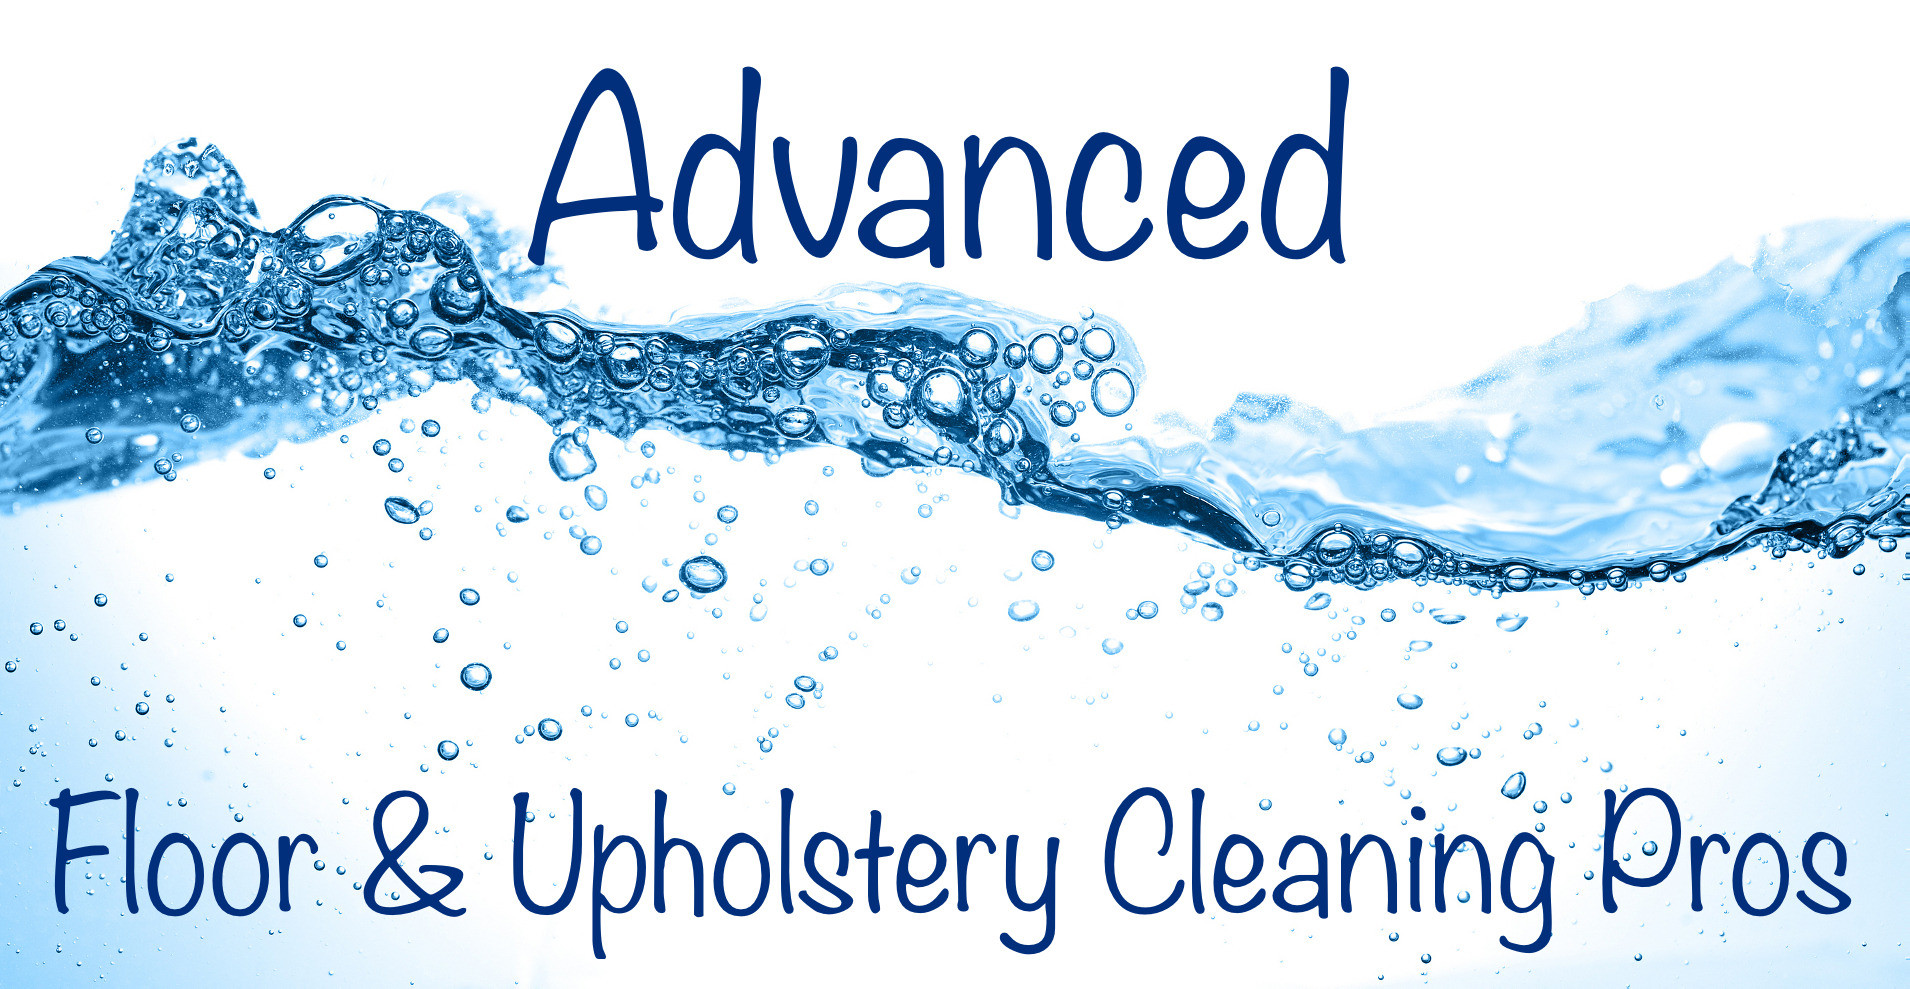 Advanced Floor & Upholstery Cleaning Pros logo